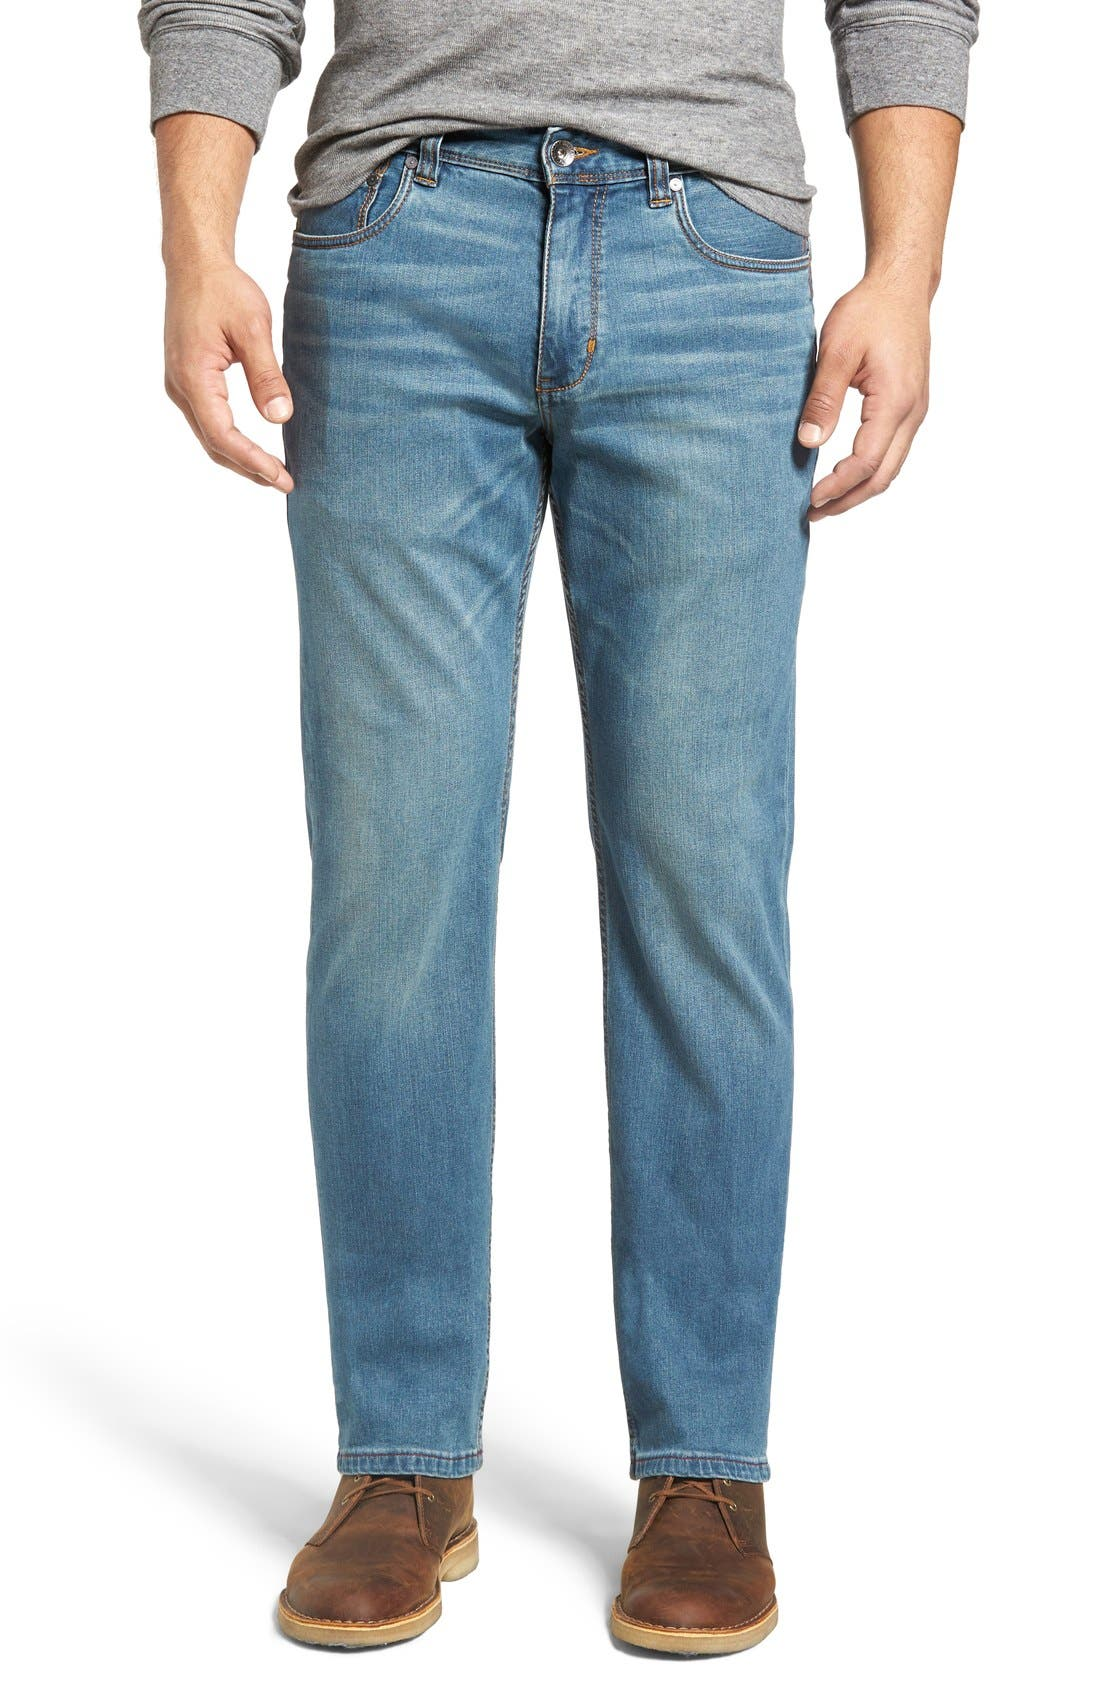 Alternate Image 1 Selected - Tommy Bahama Sand Drifter Straight Leg Jeans